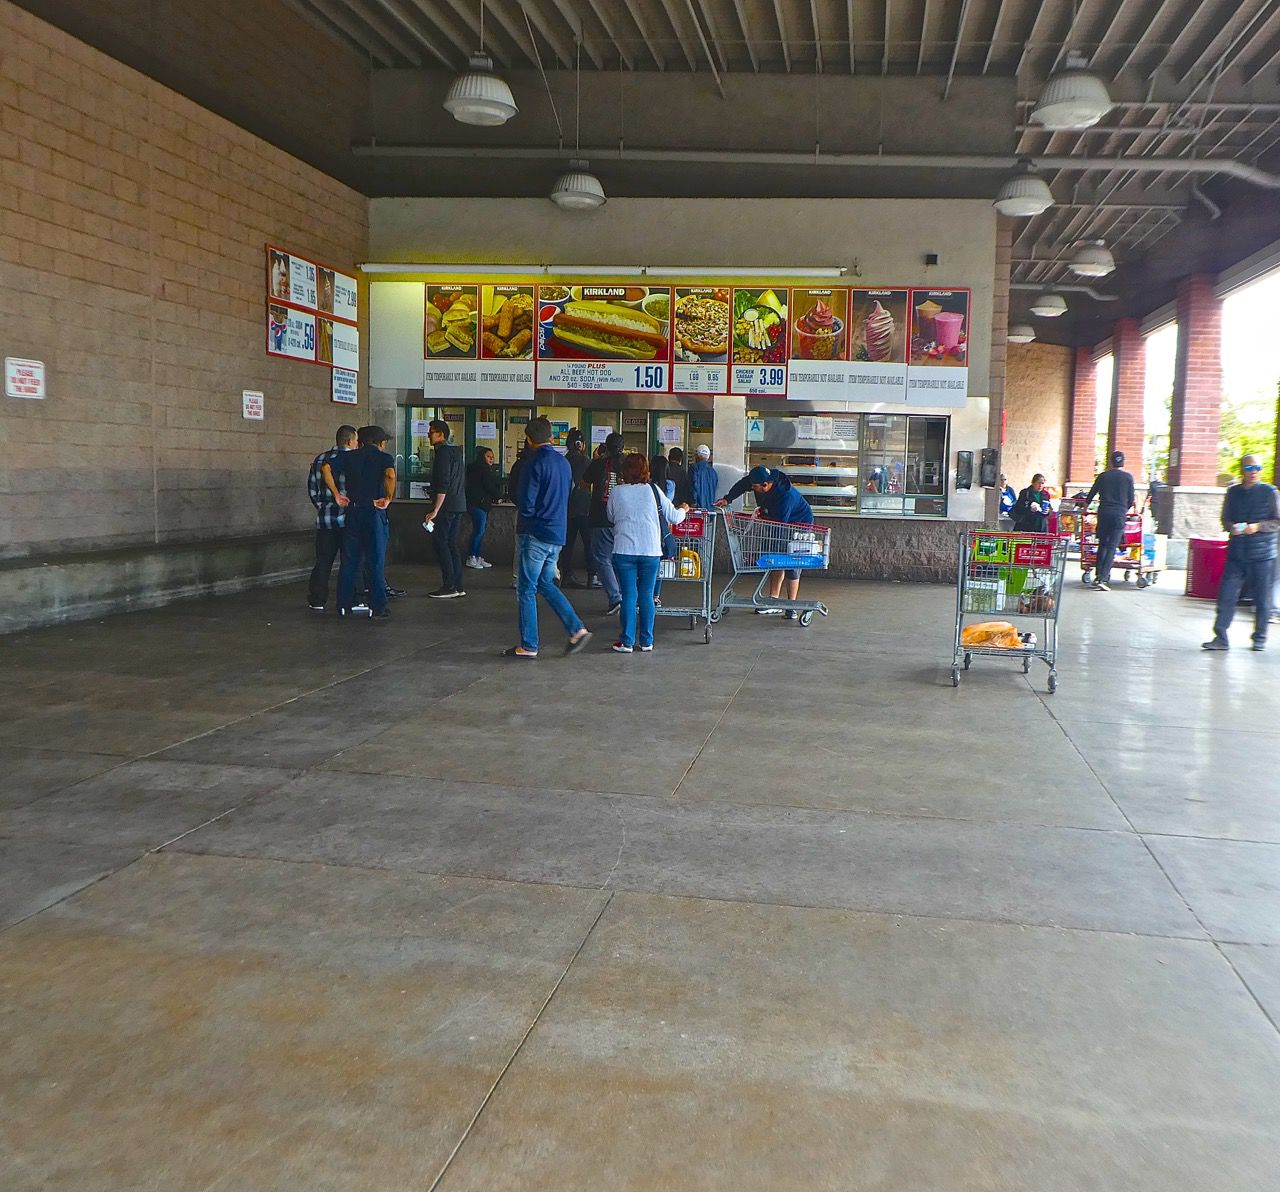 Food stand at Costco